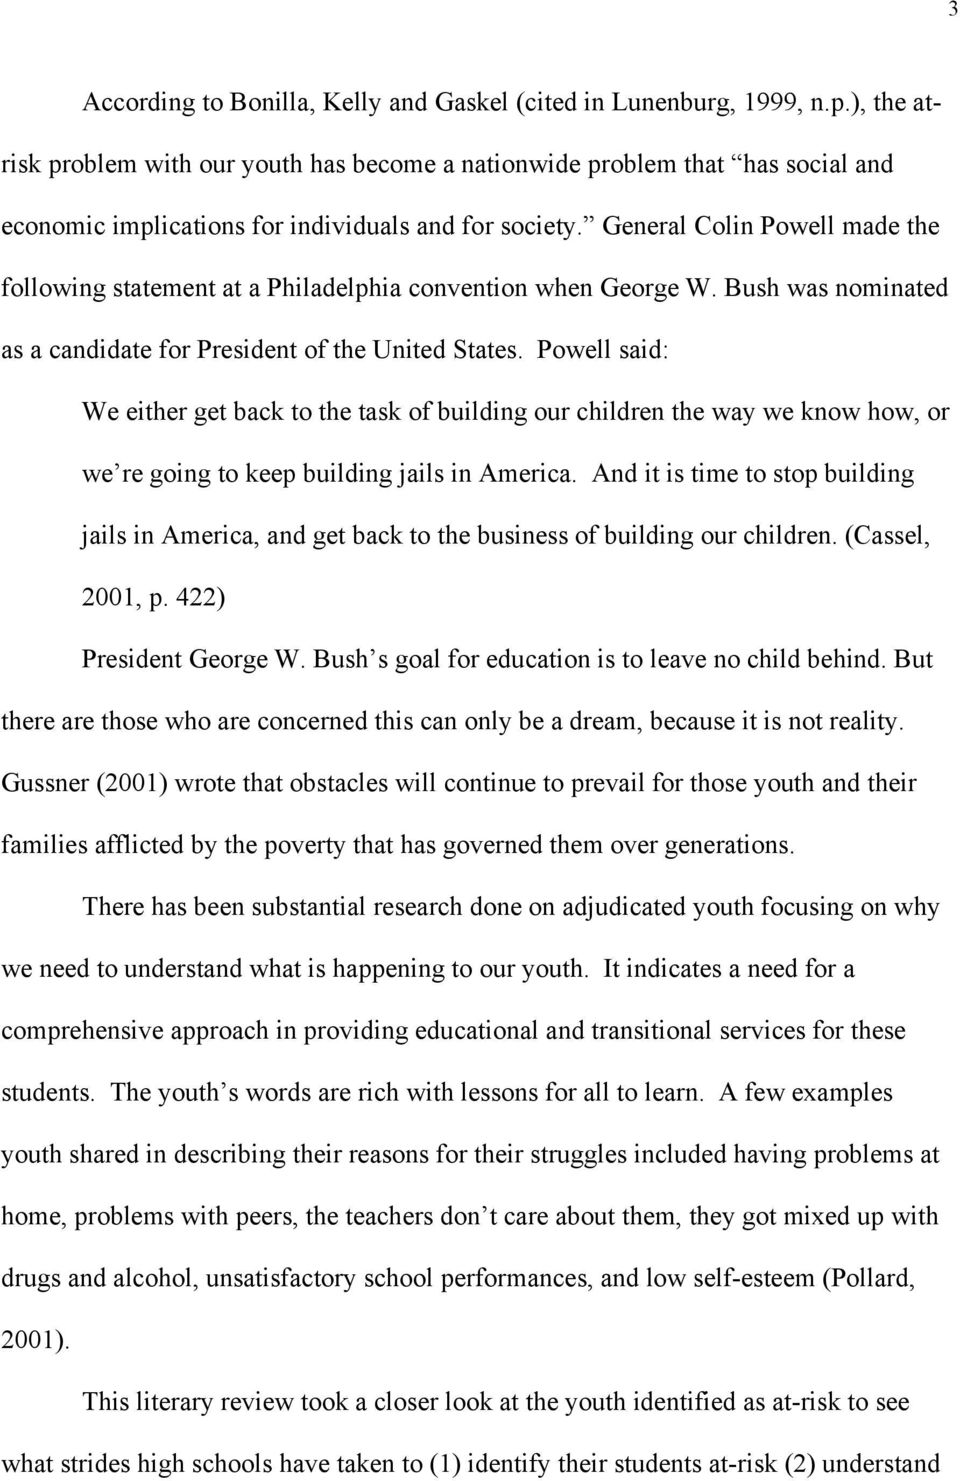 General Colin Powell made the following statement at a Philadelphia convention when George W. Bush was nominated as a candidate for President of the United States.